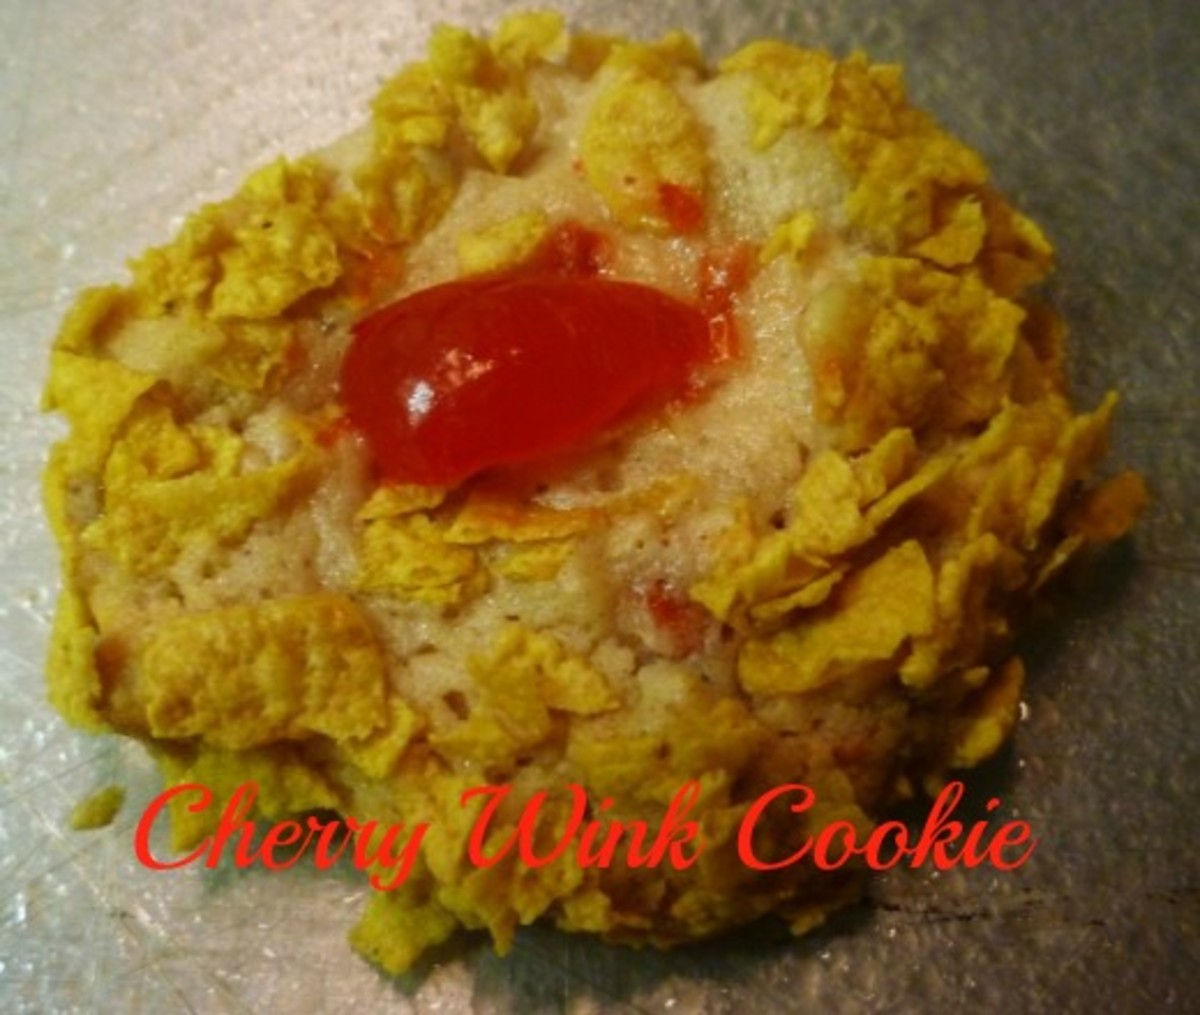 Homemade Cherry Wink Cookie